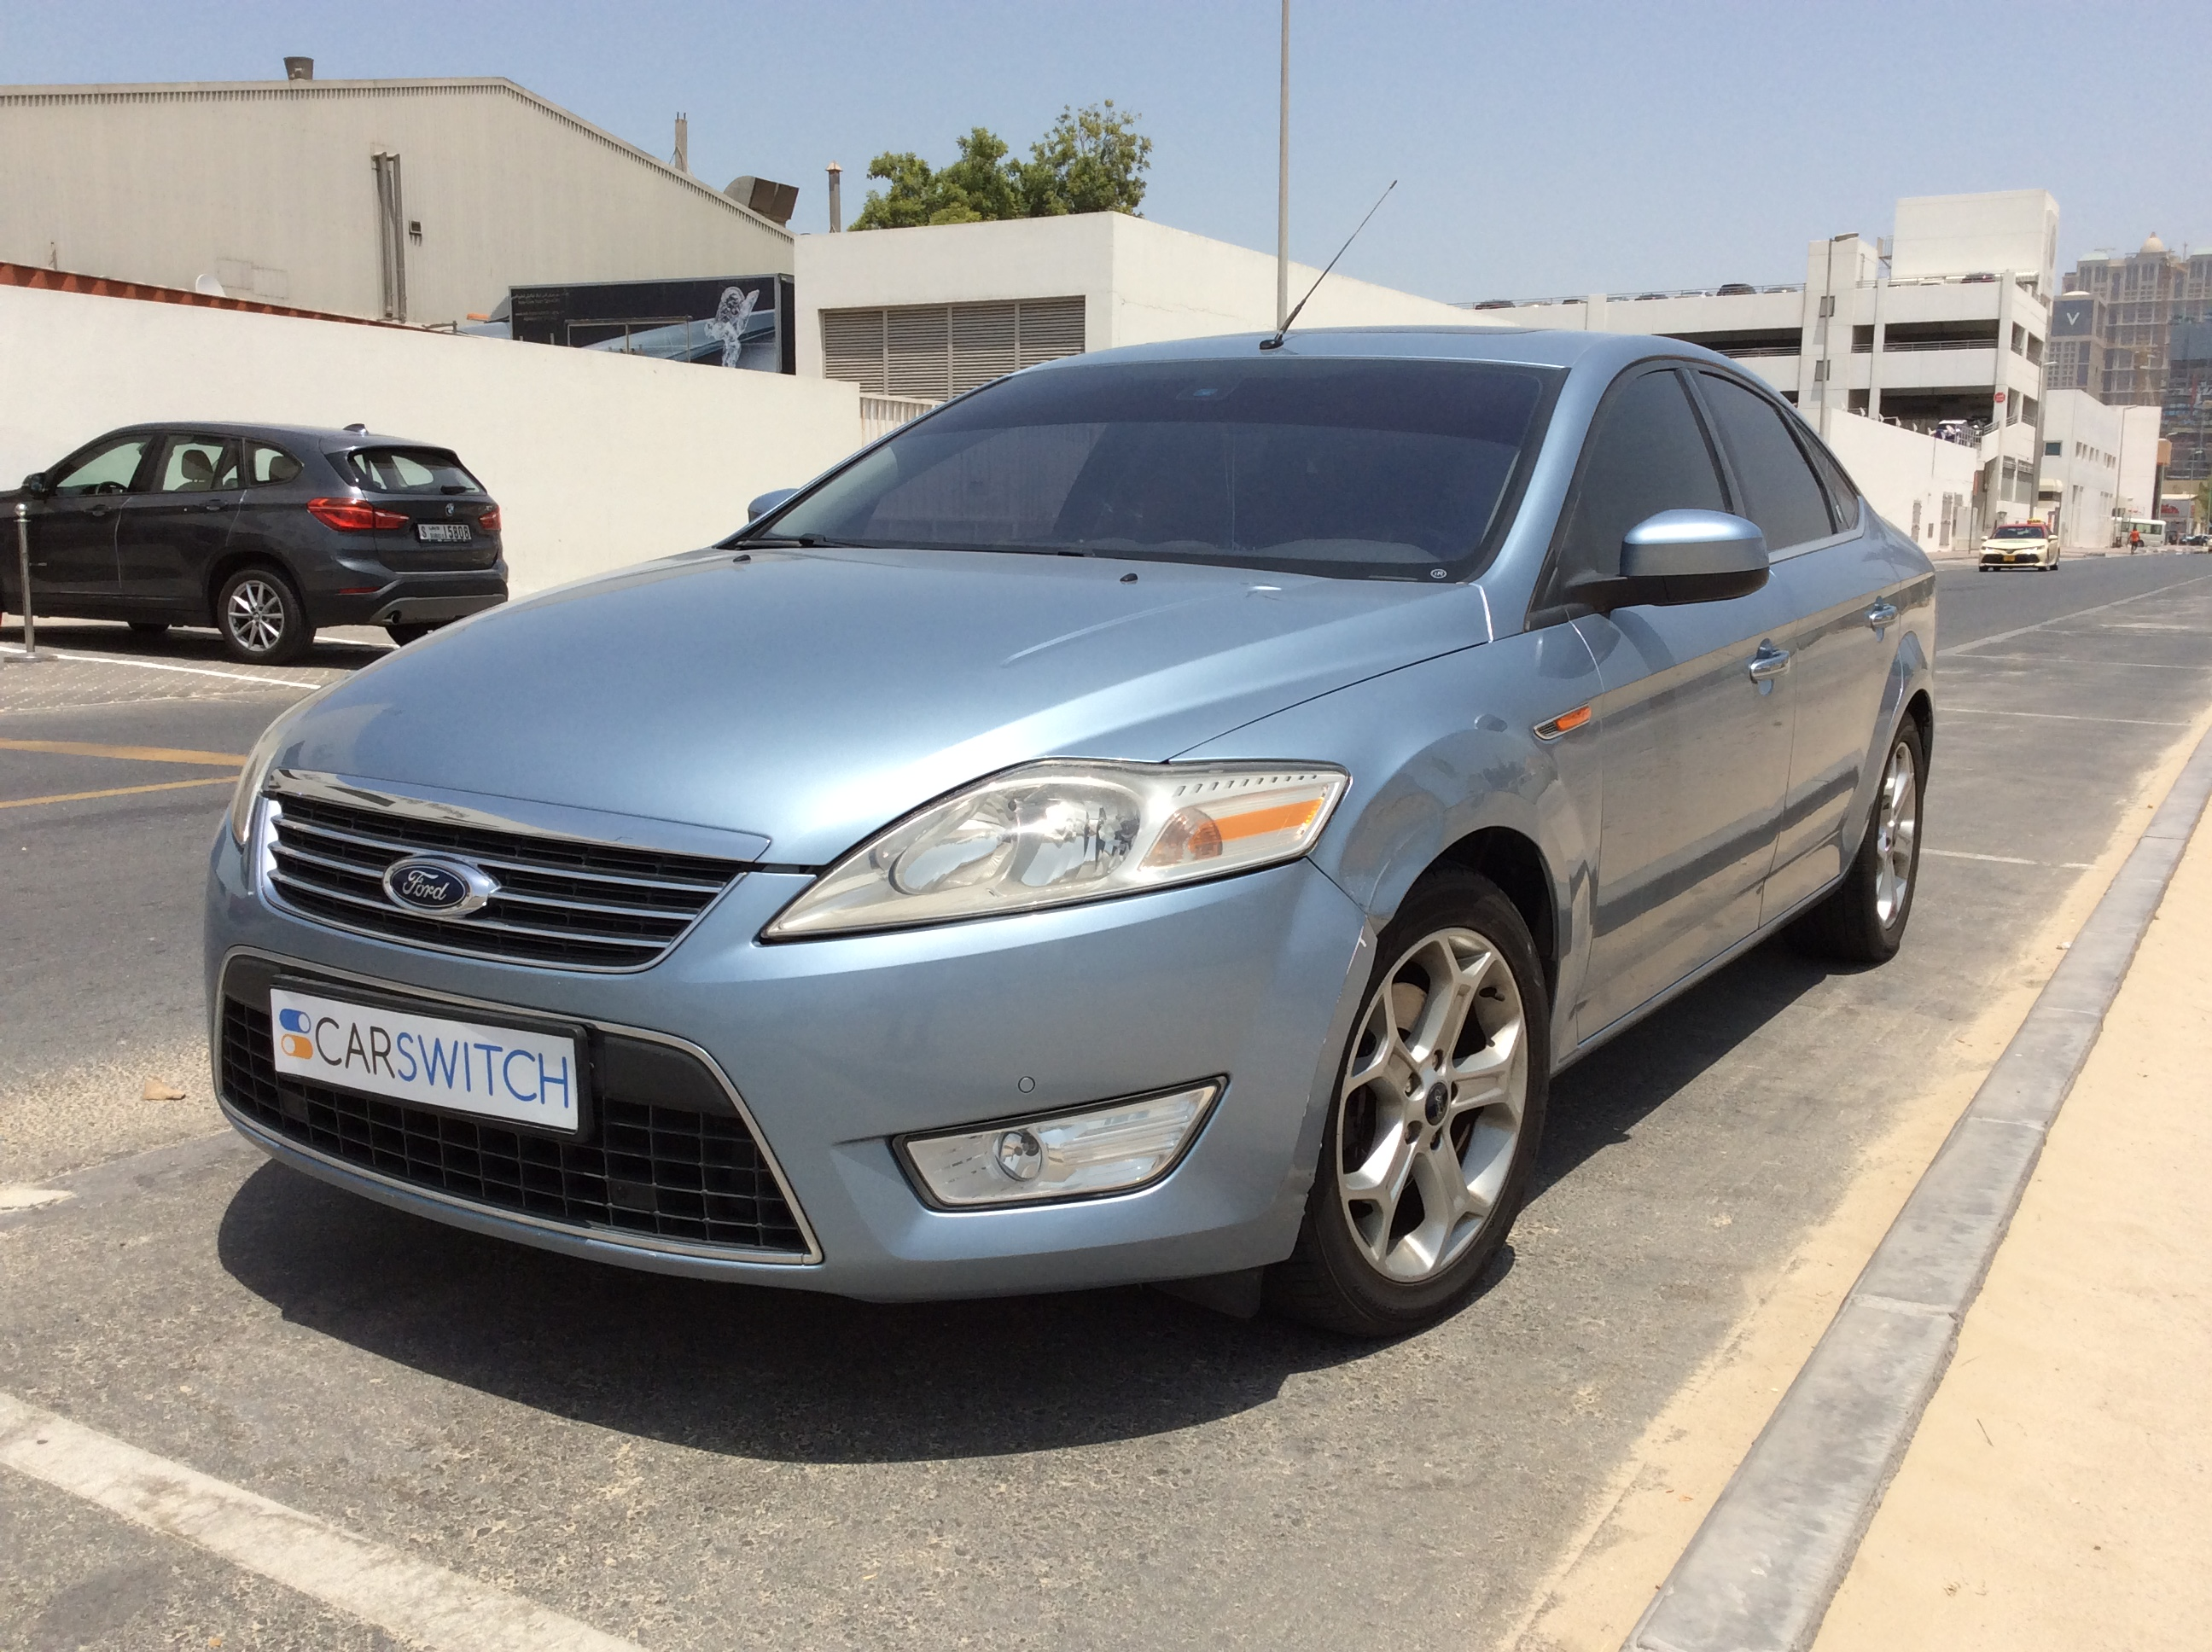 Used Ford Mondeo 2008 (920755) | YallaMotor com